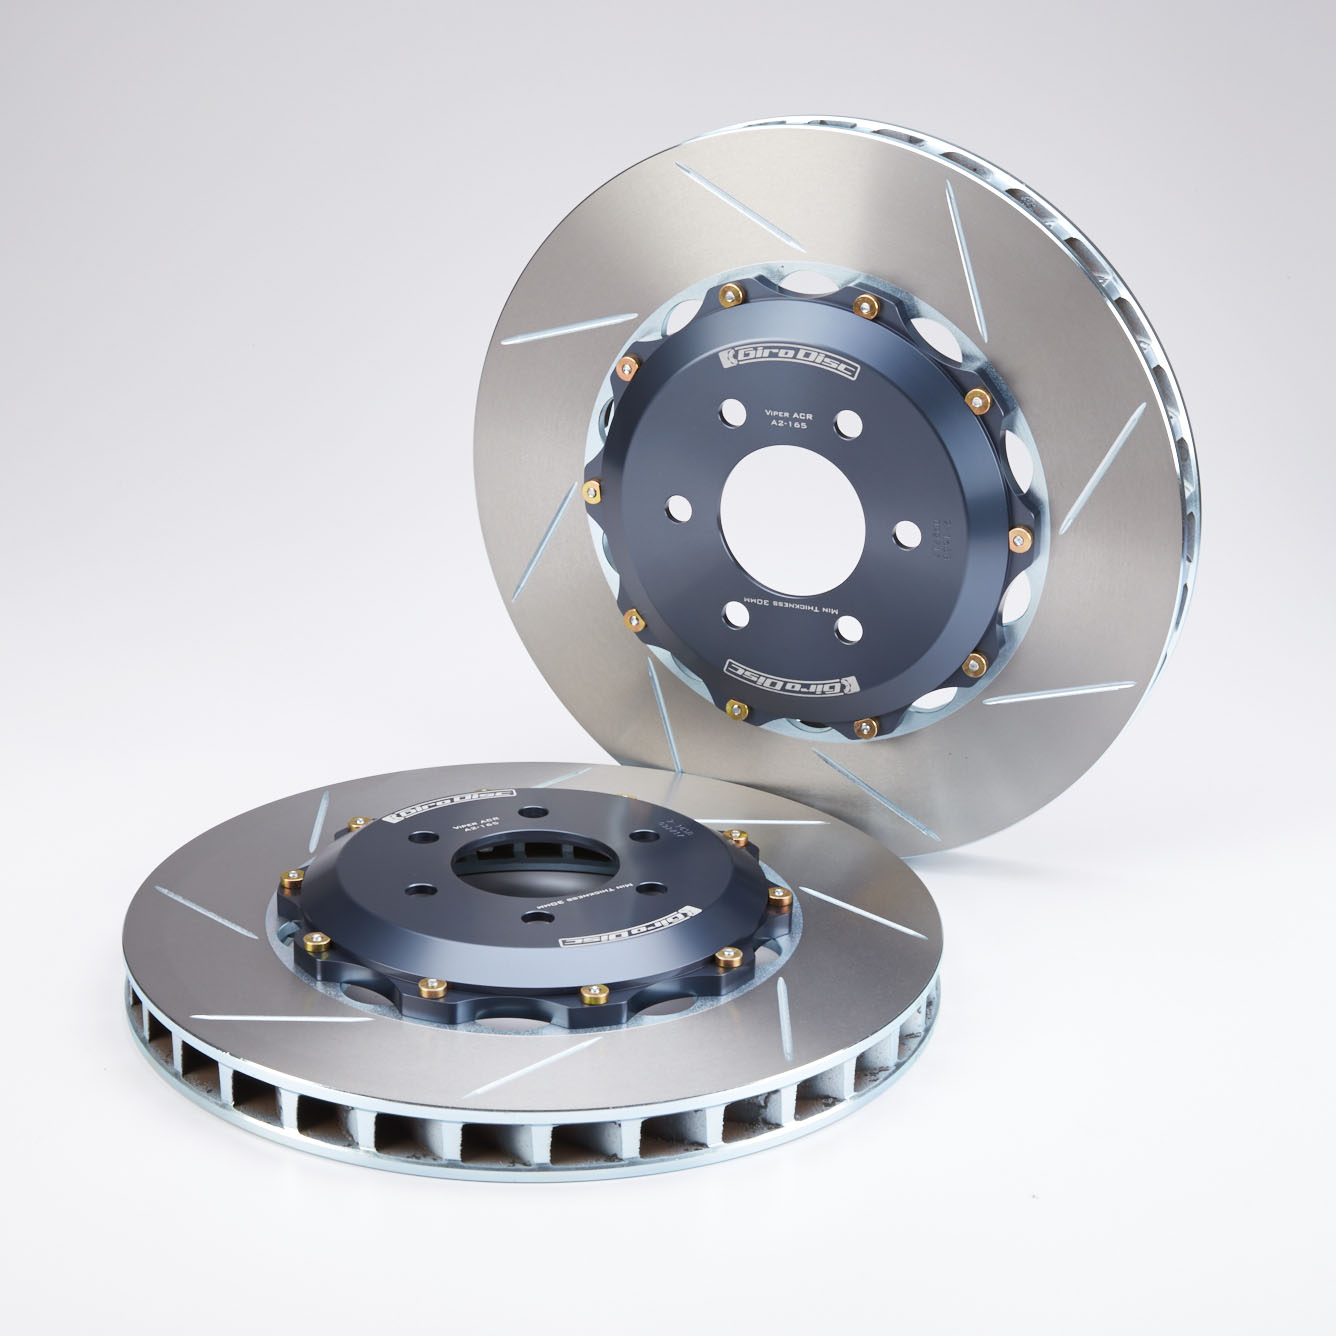 Girodisc Viper ACR A2-165 rear replacement rotors